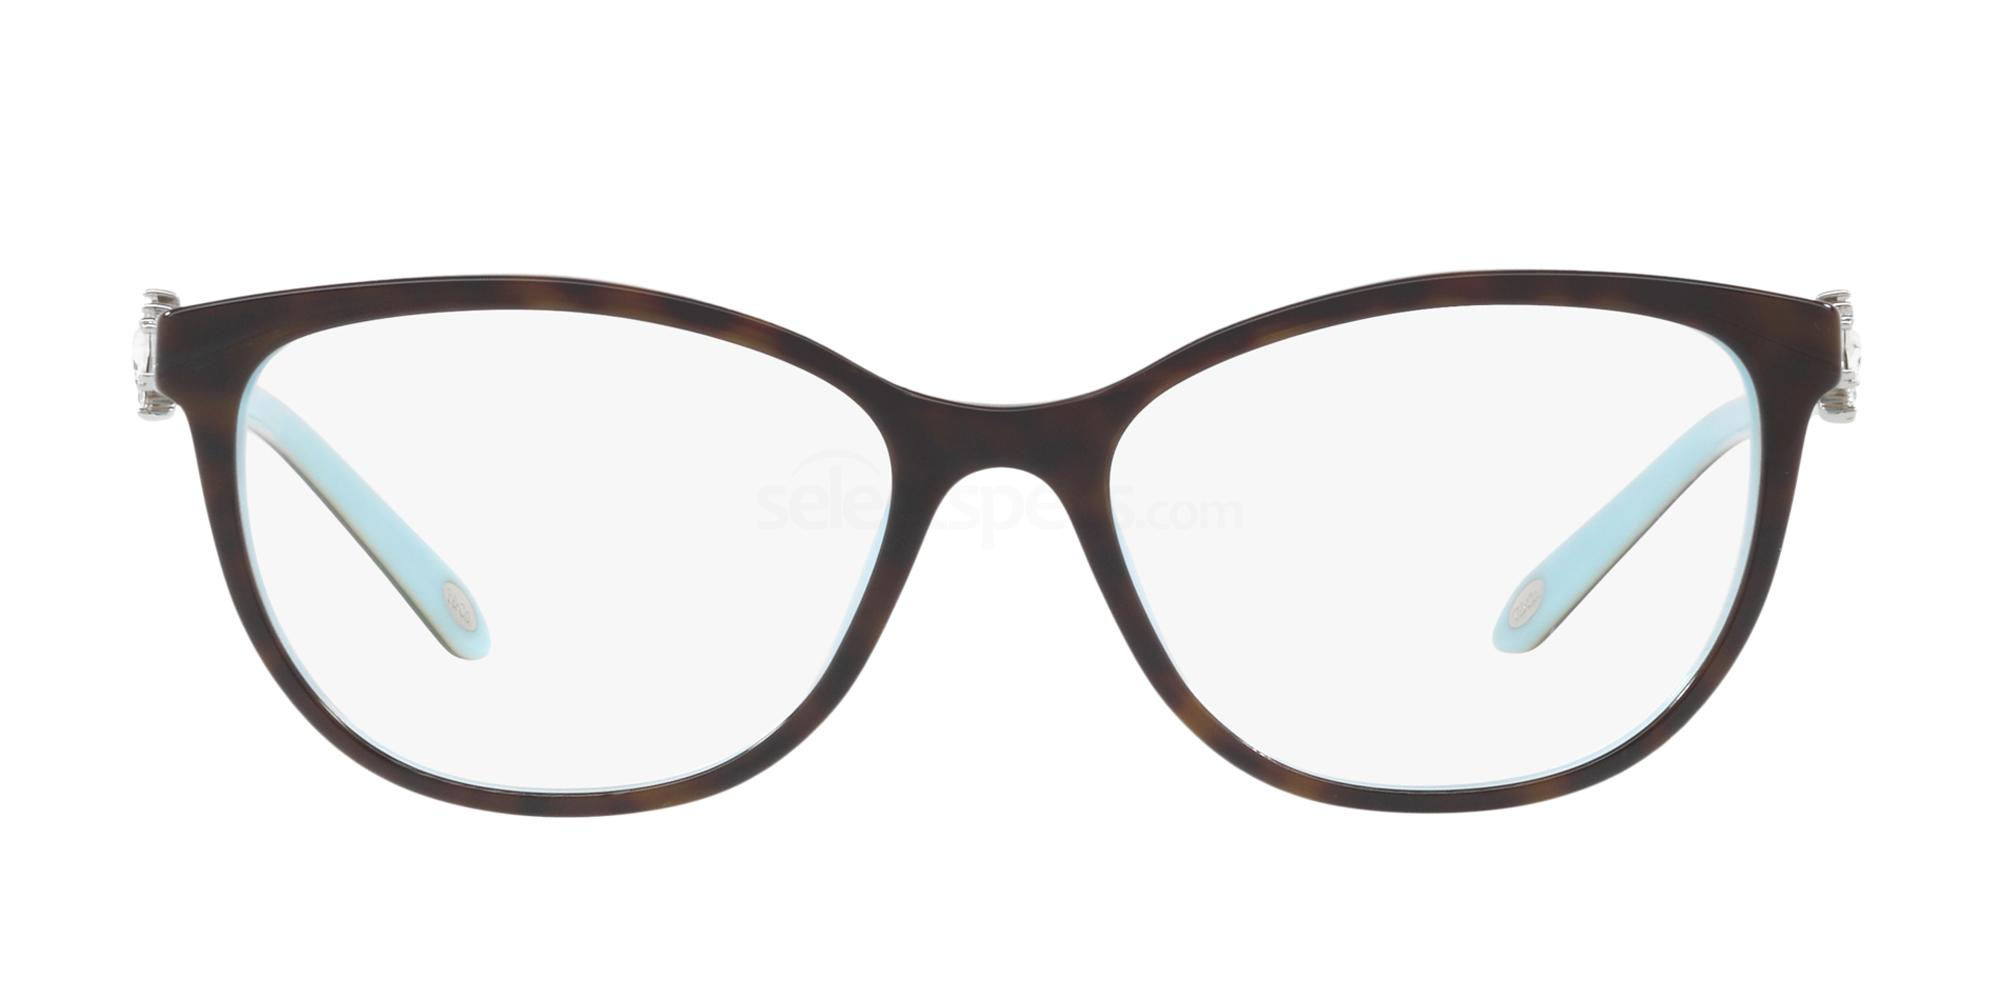 8134 TF2144HB Glasses, Tiffany & Co.